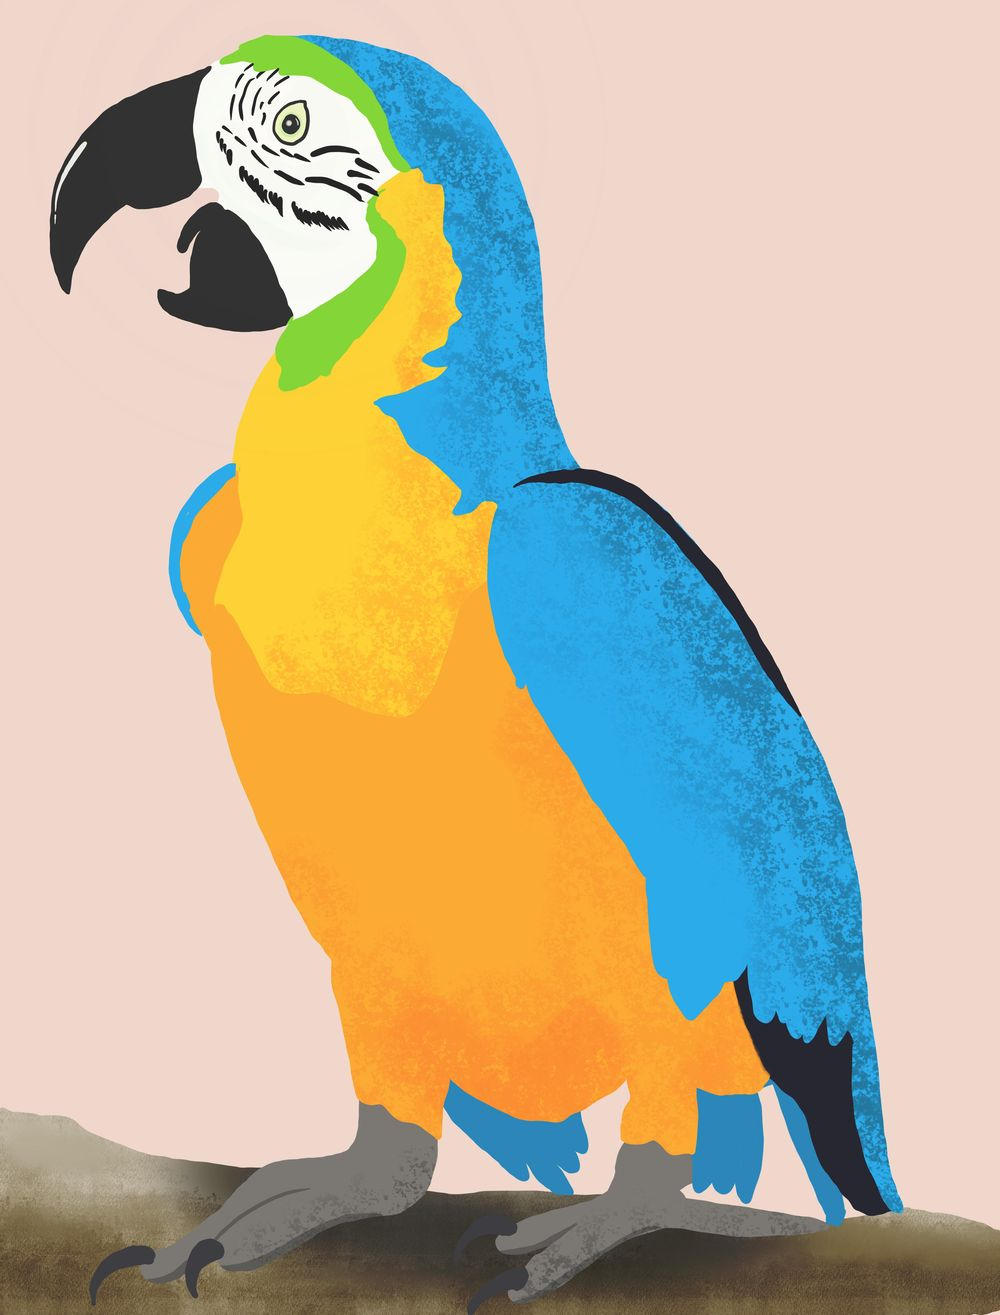 Parrot - image 1 - student project